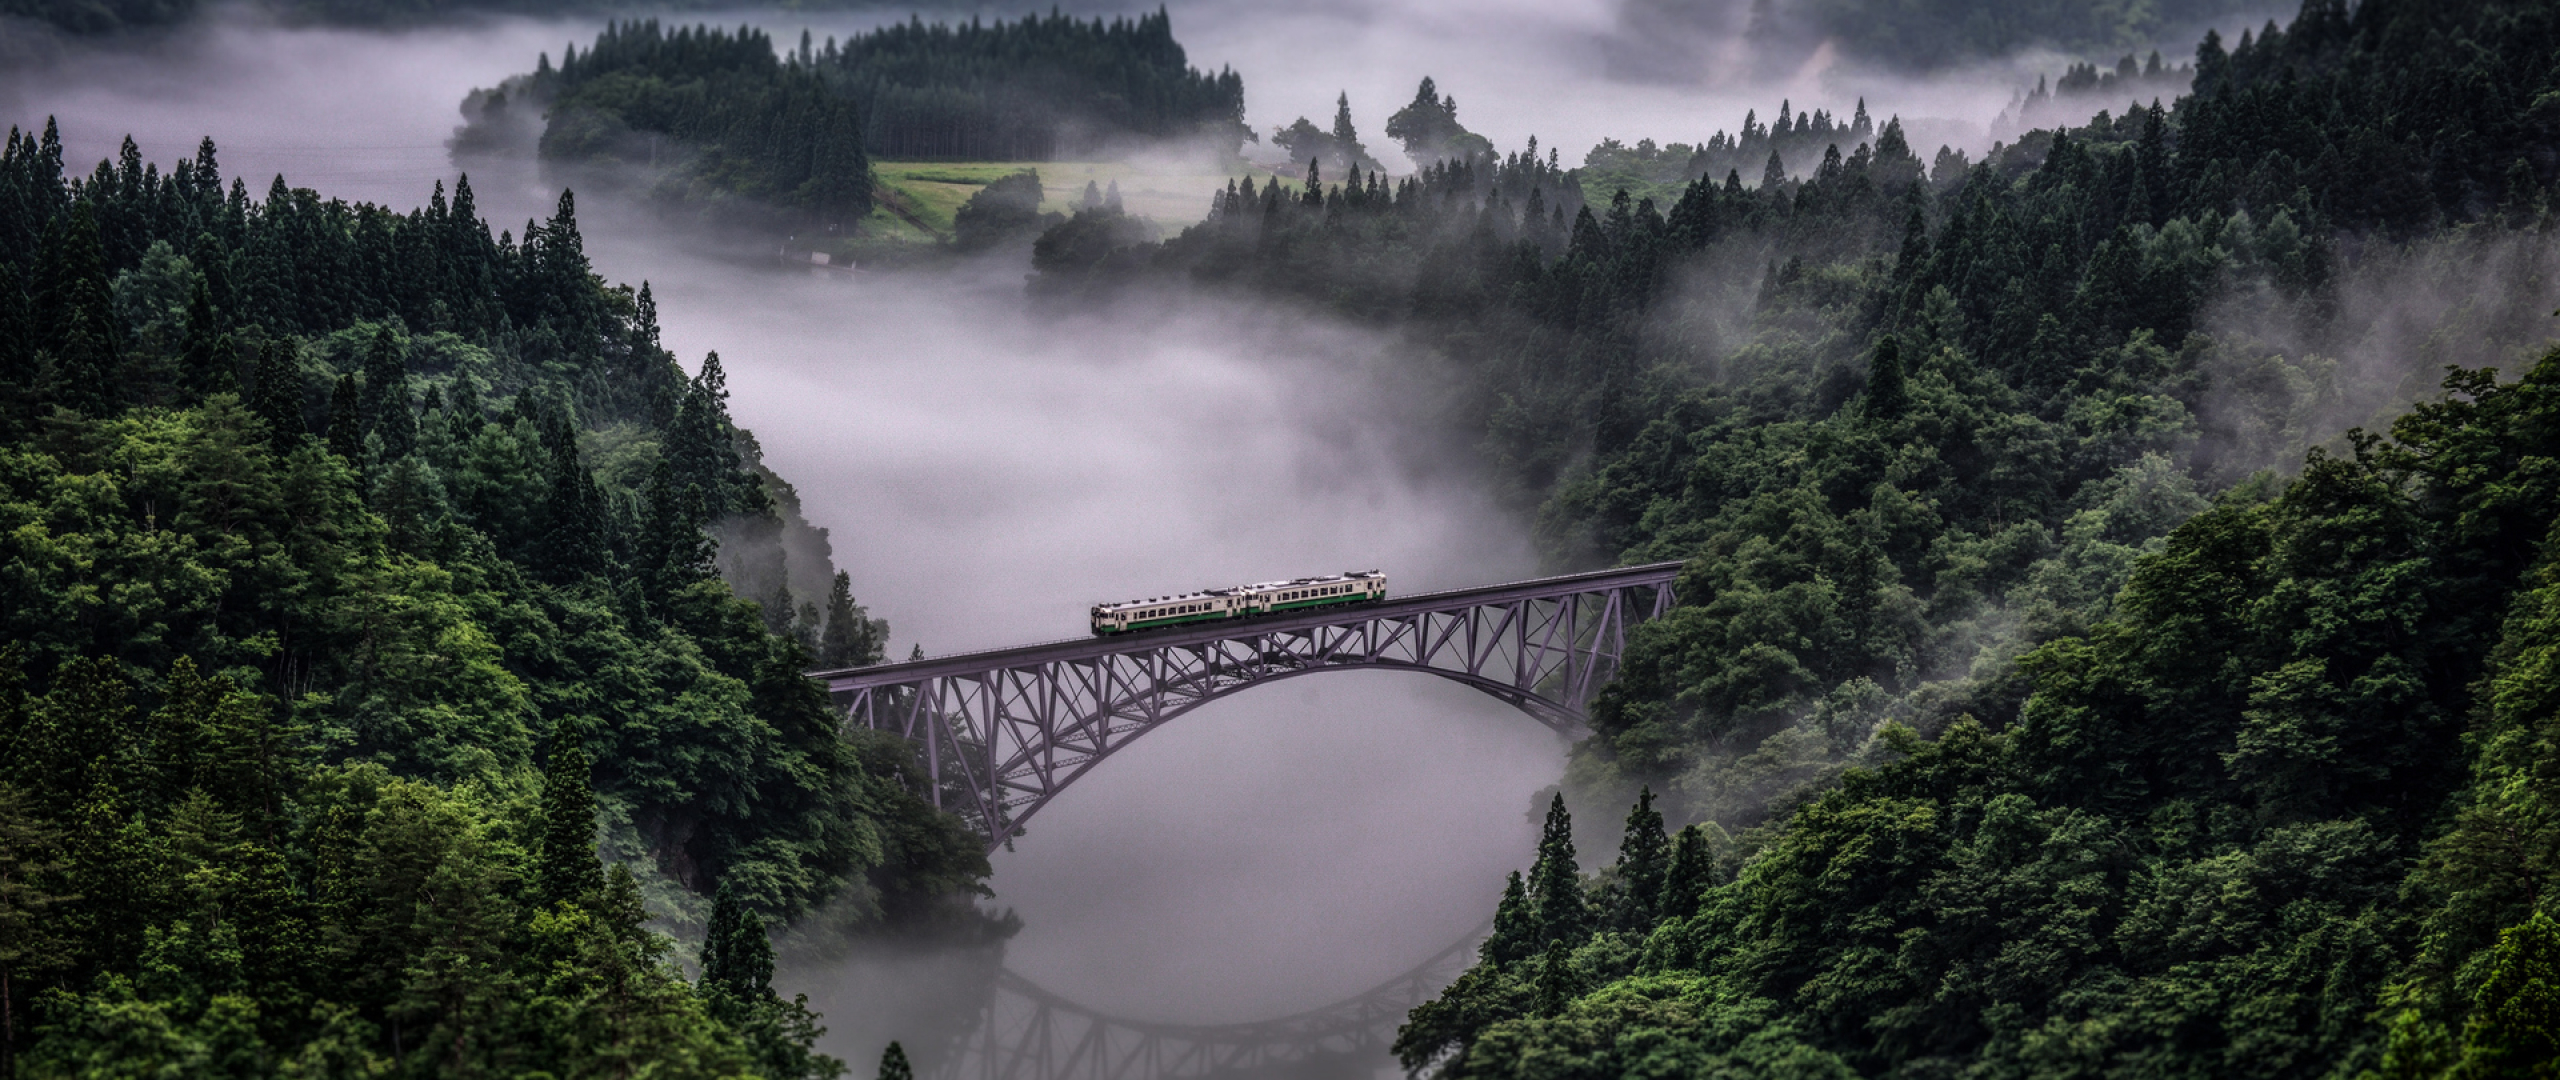 Tadami Line In Japan, Full Hd Wallpaper-7198